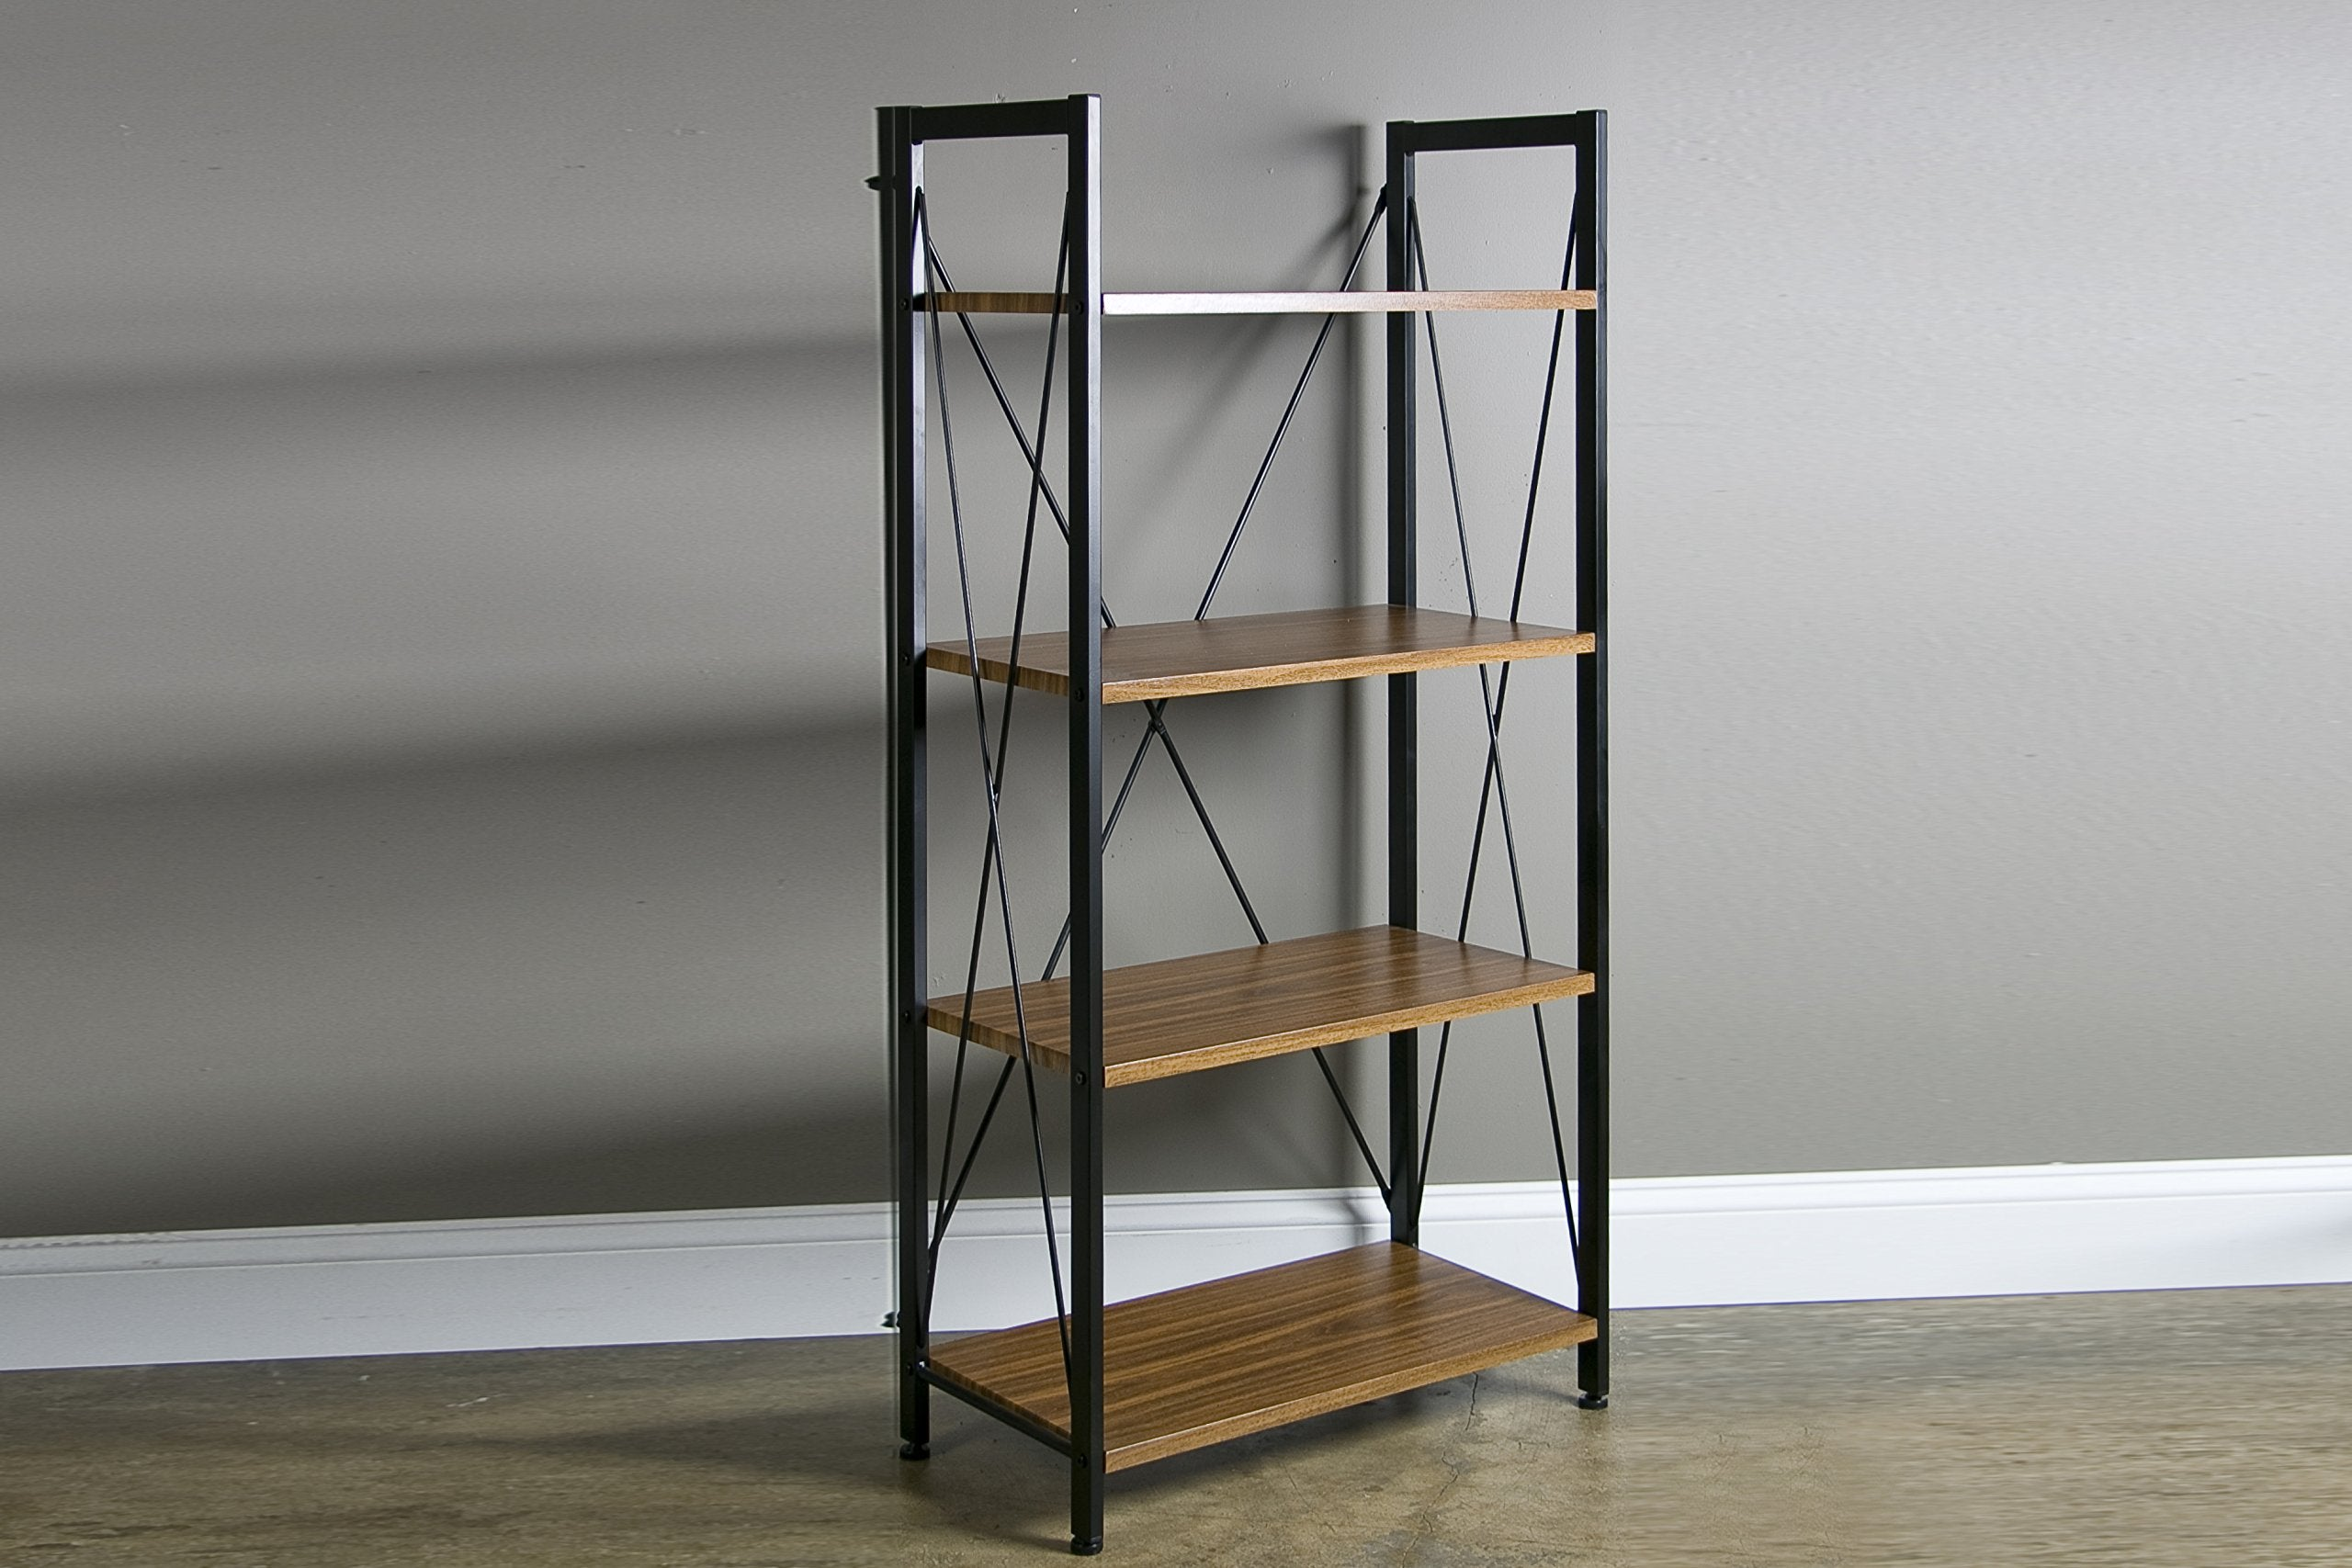 Baxton Studio New Semester Bookshelf